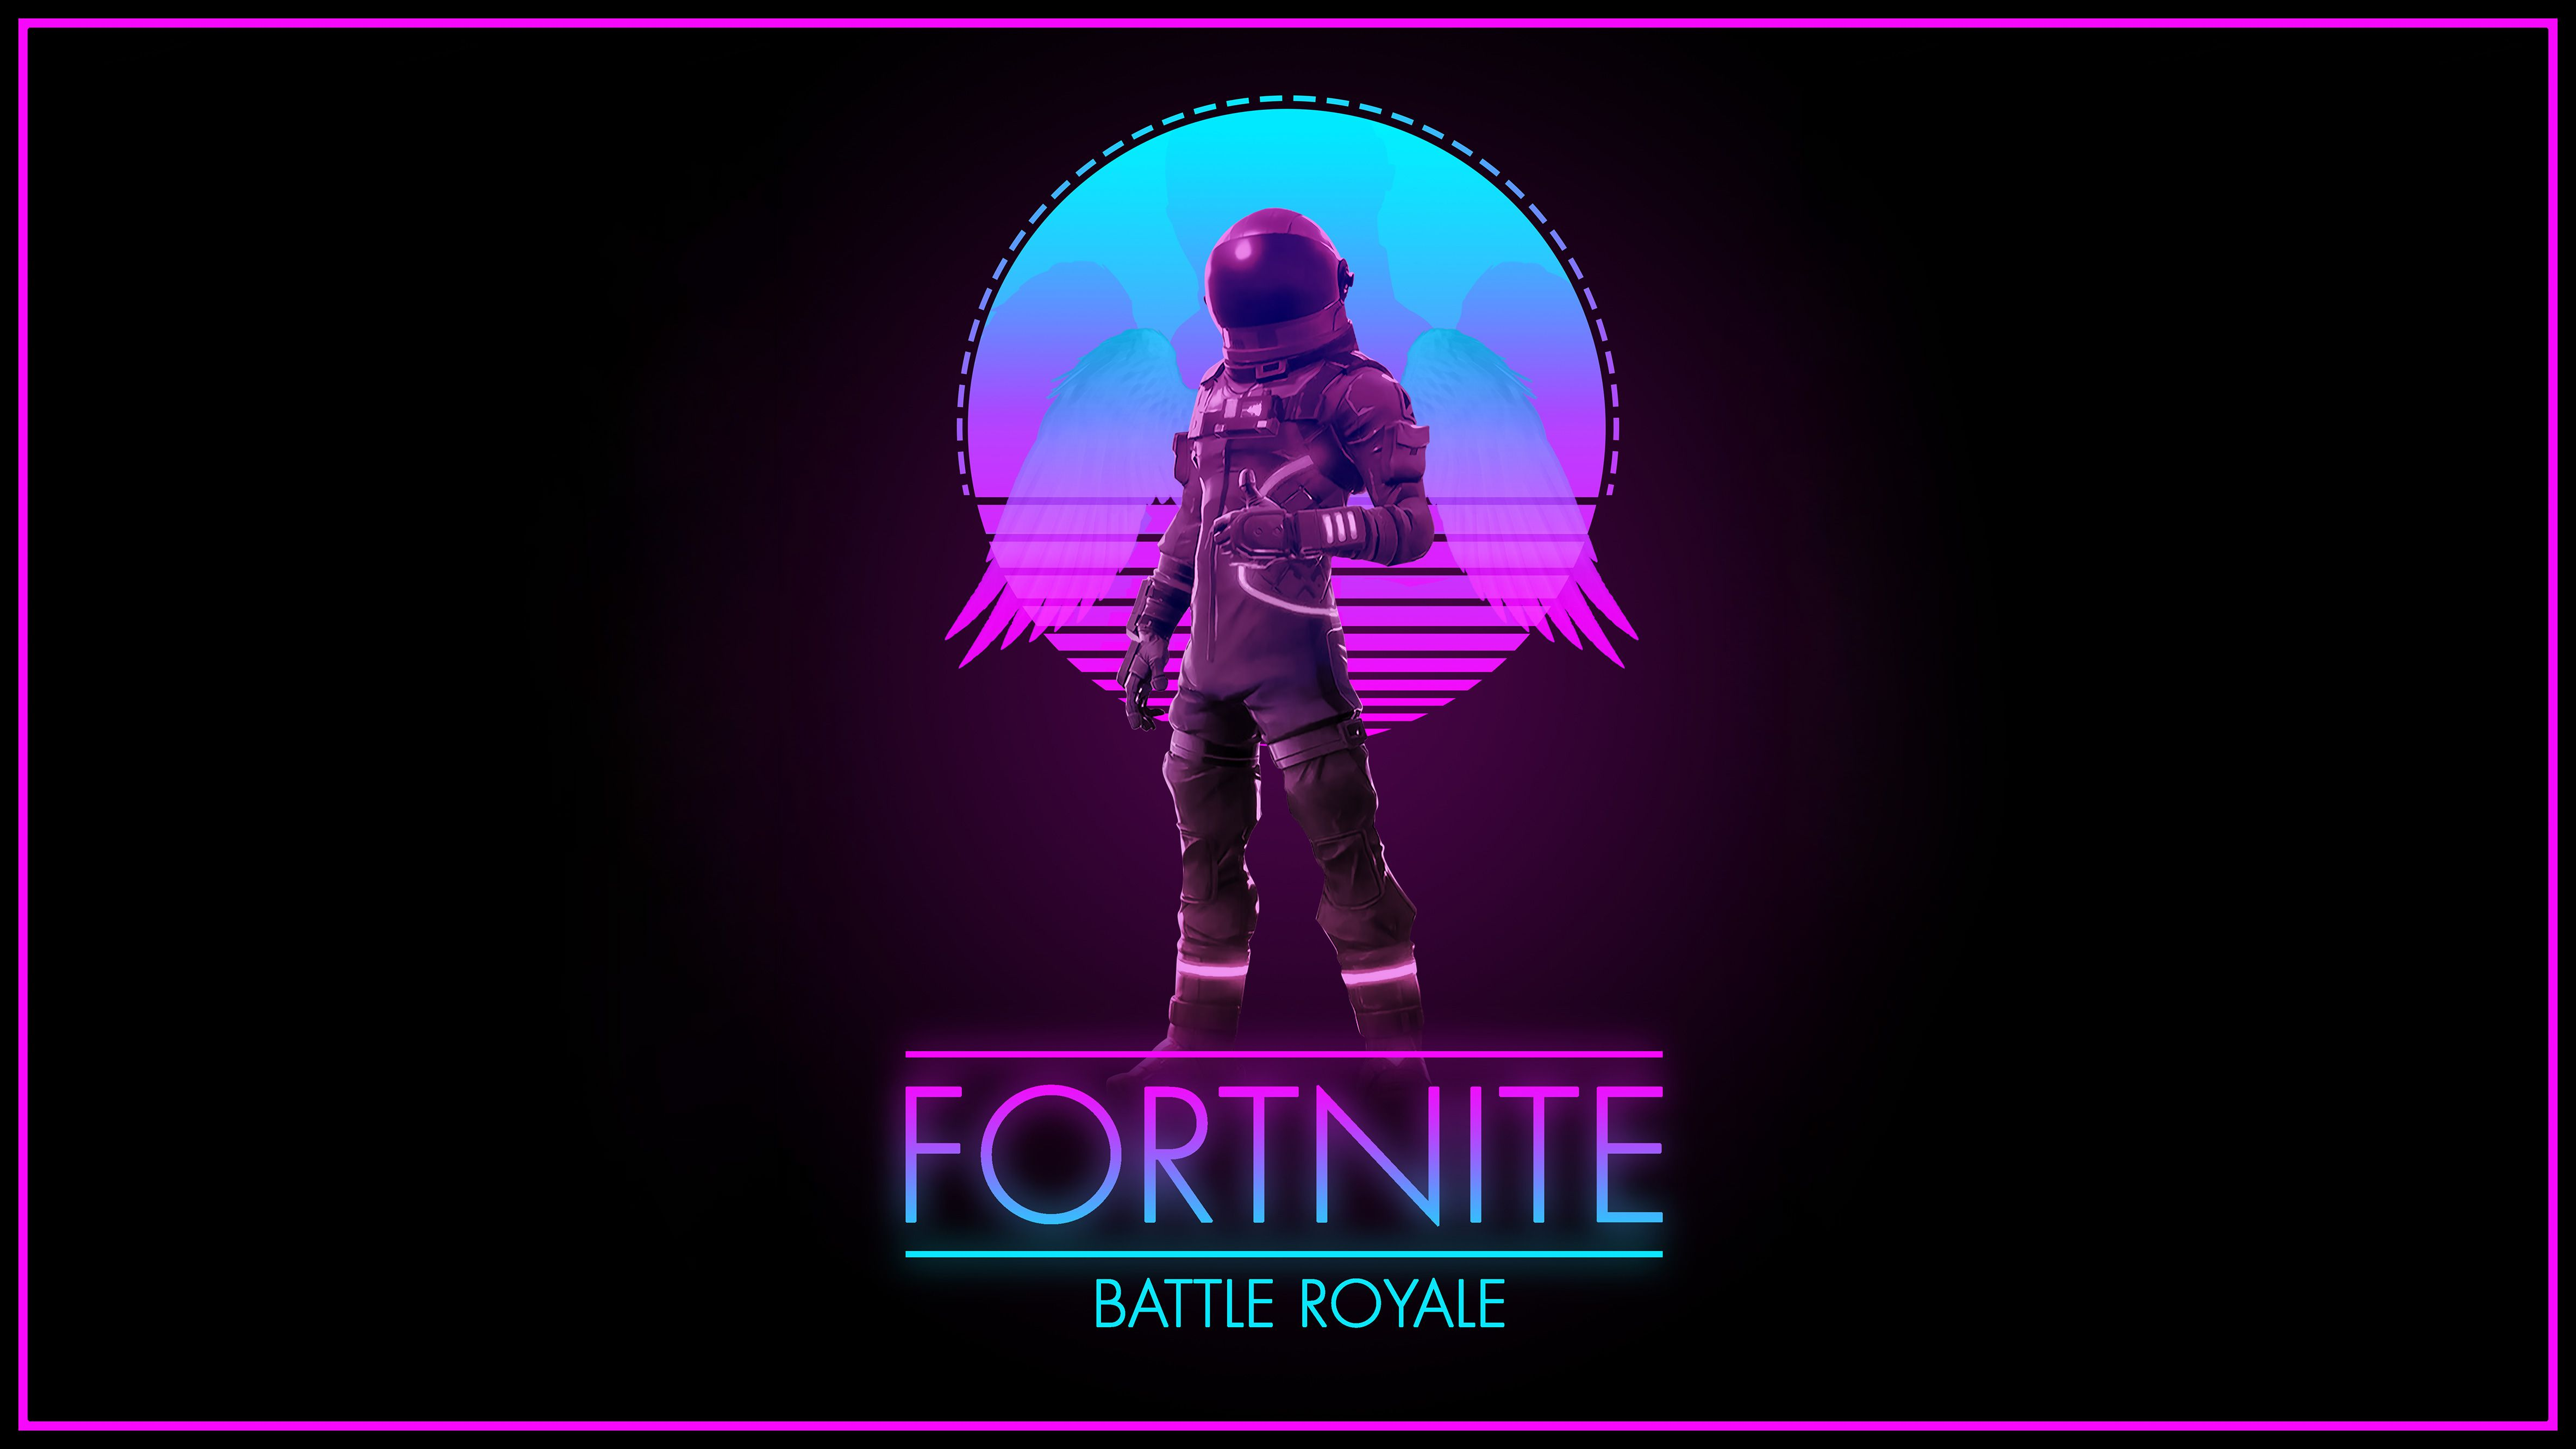 Cool Fortnite Wallpapers   Top Cool Fortnite Backgrounds 4740x2666